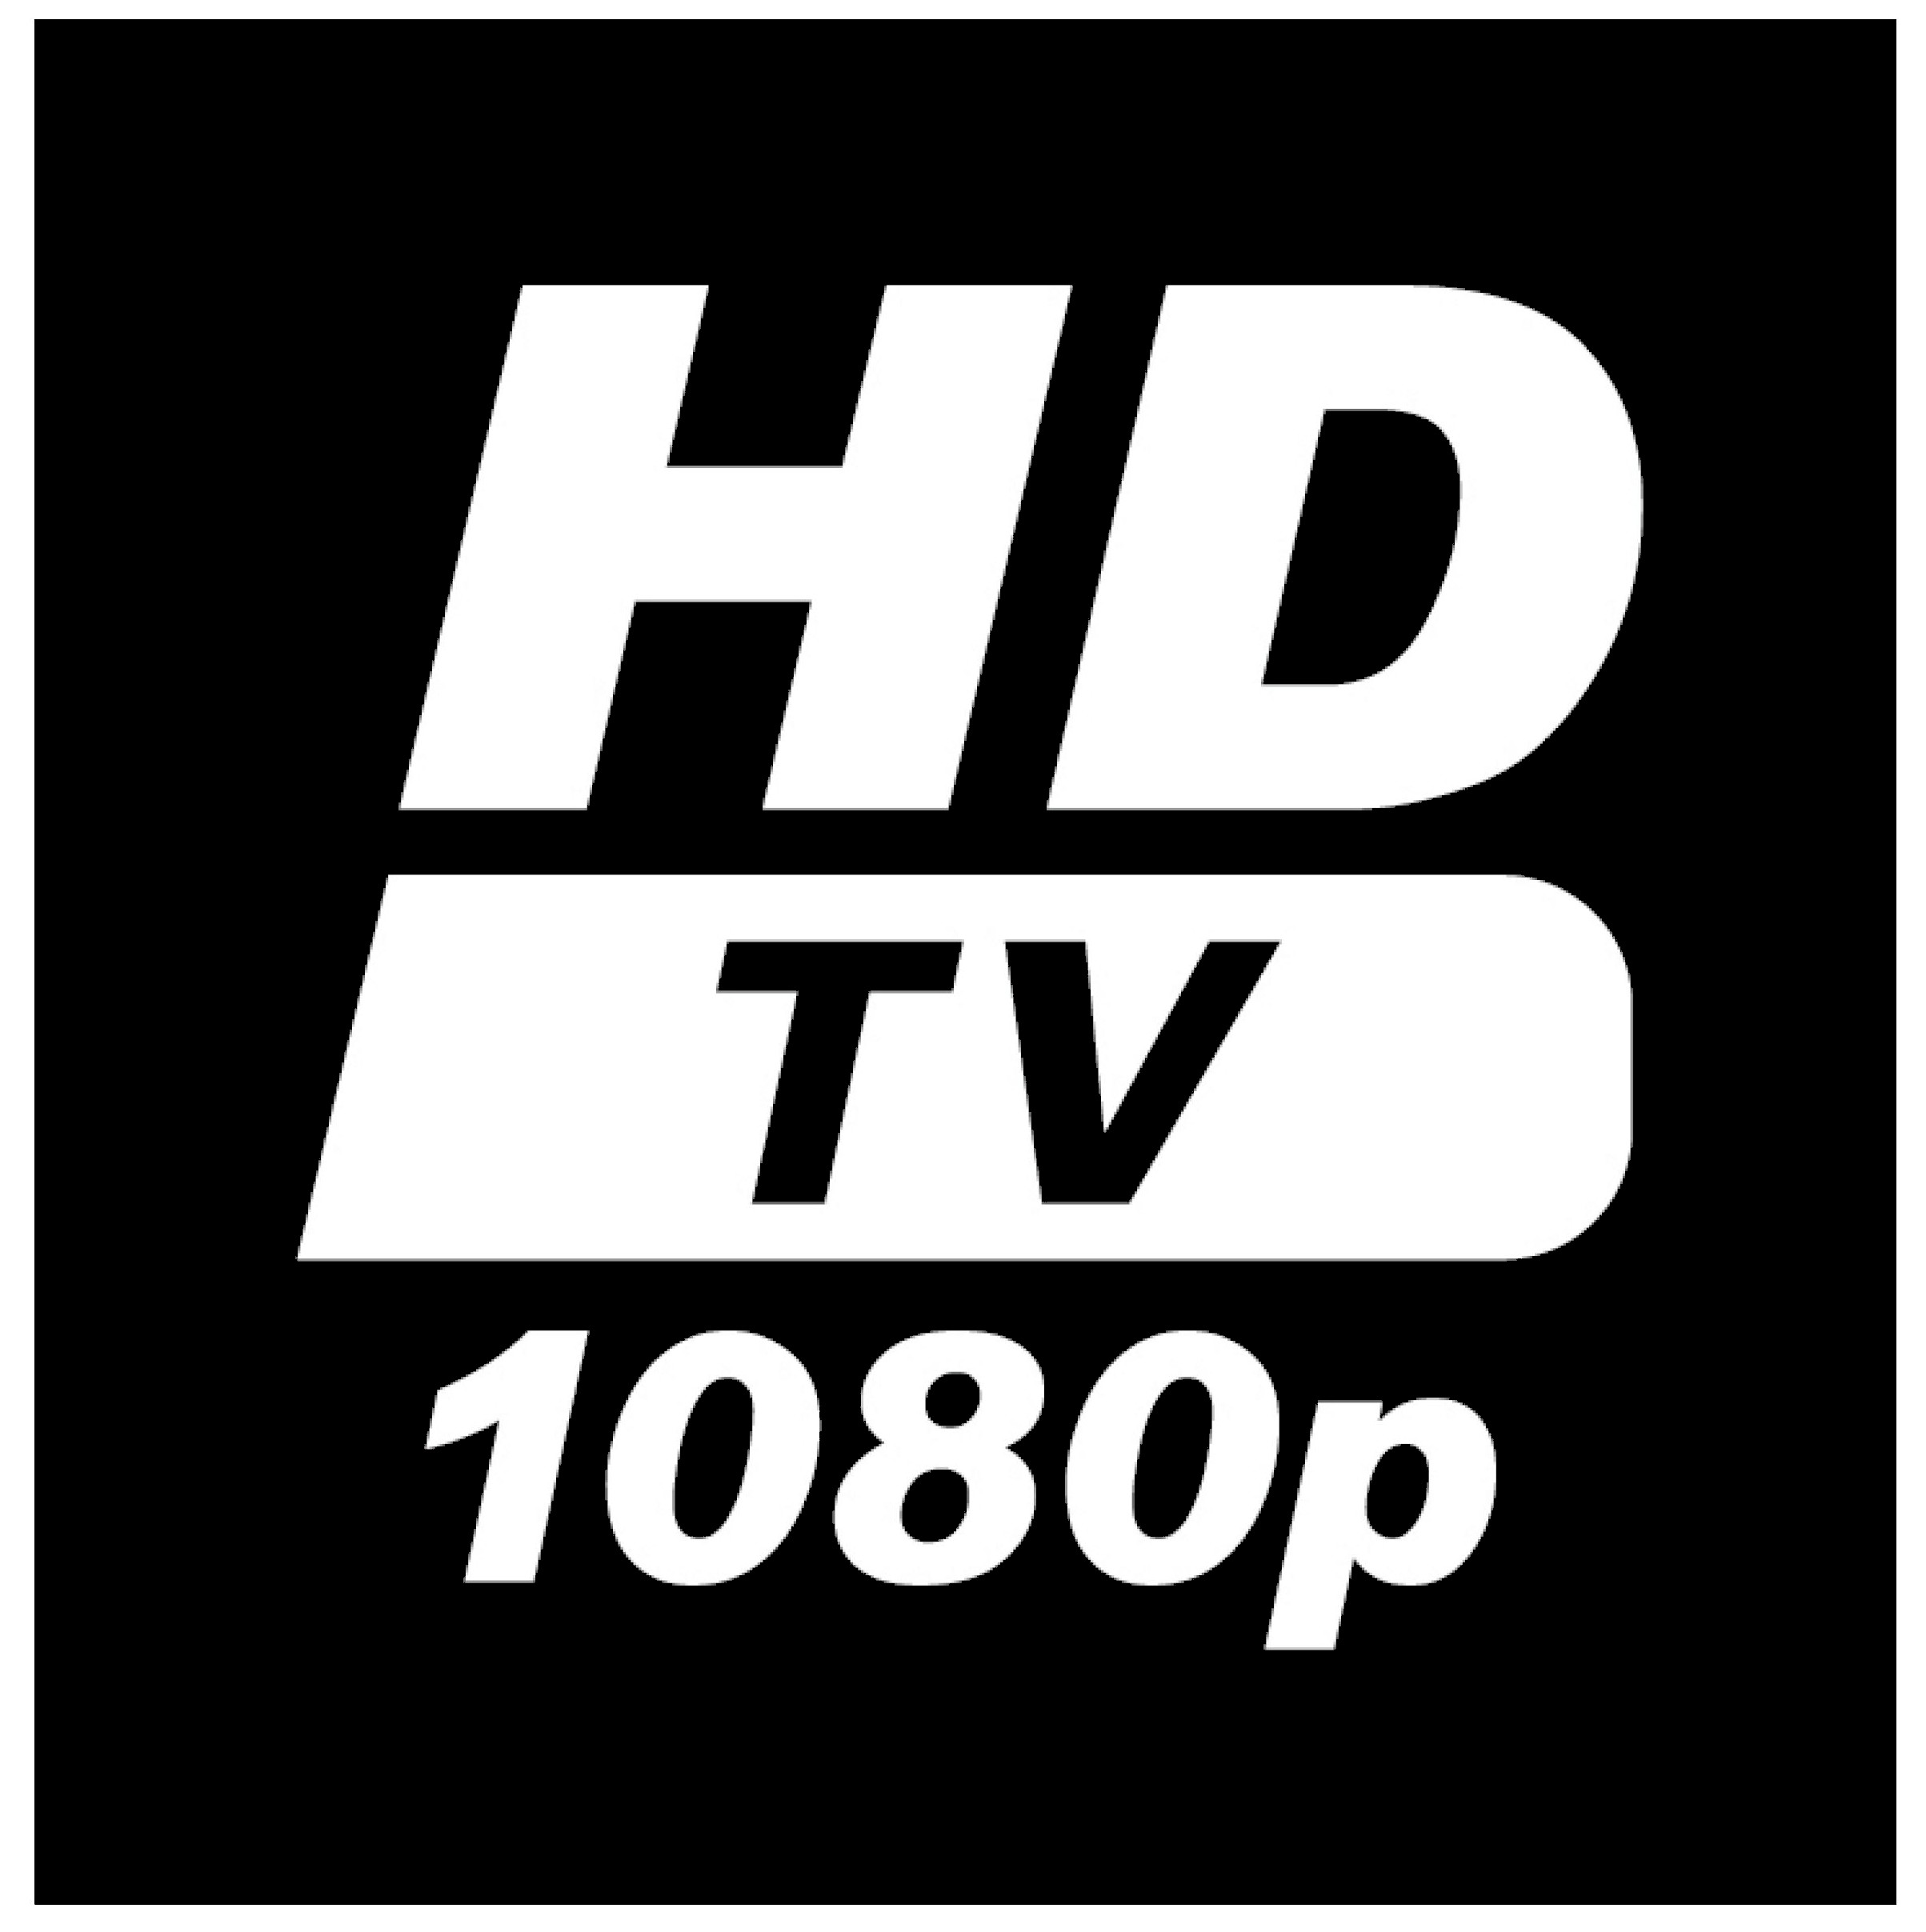 Free Hdtv Logo Png, Download Free Clip Art, Free Clip Art on Clipart.